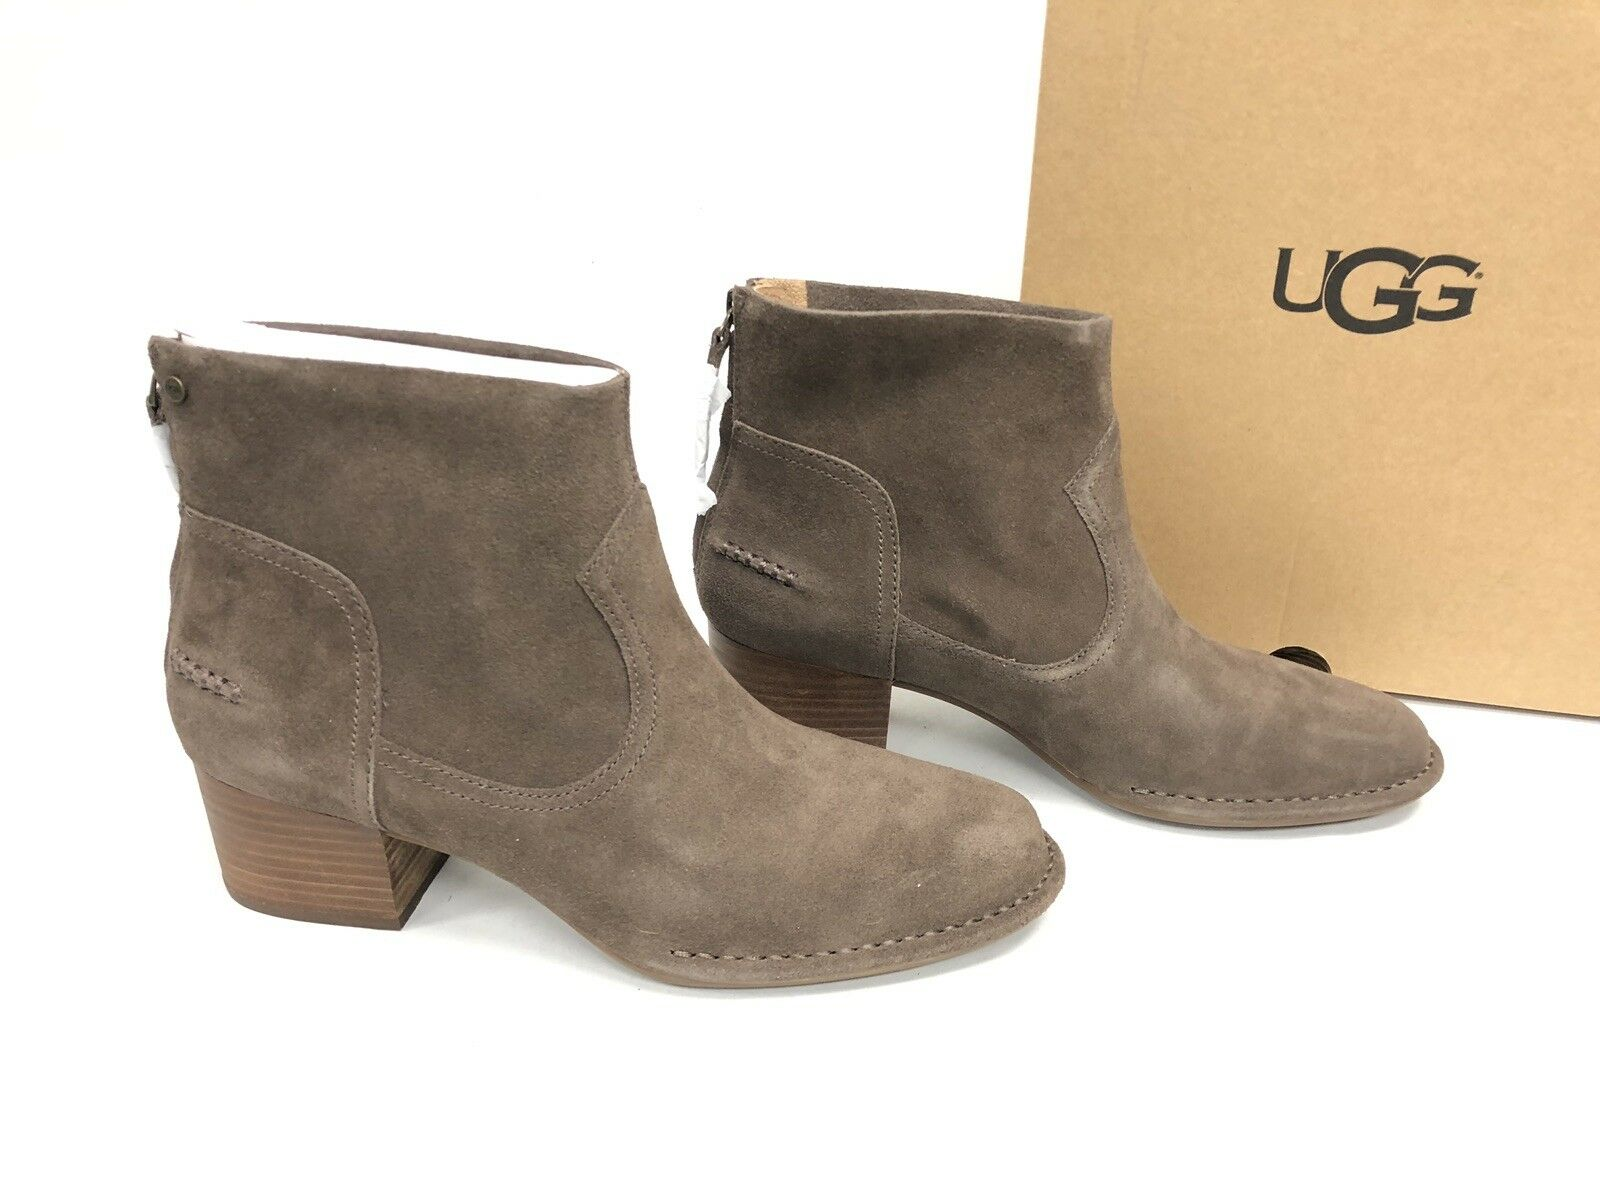 1ea7b451187 UGG Women's Bandara Ankle Boot Suede Leather Mysterious 1095053 Size 6.5